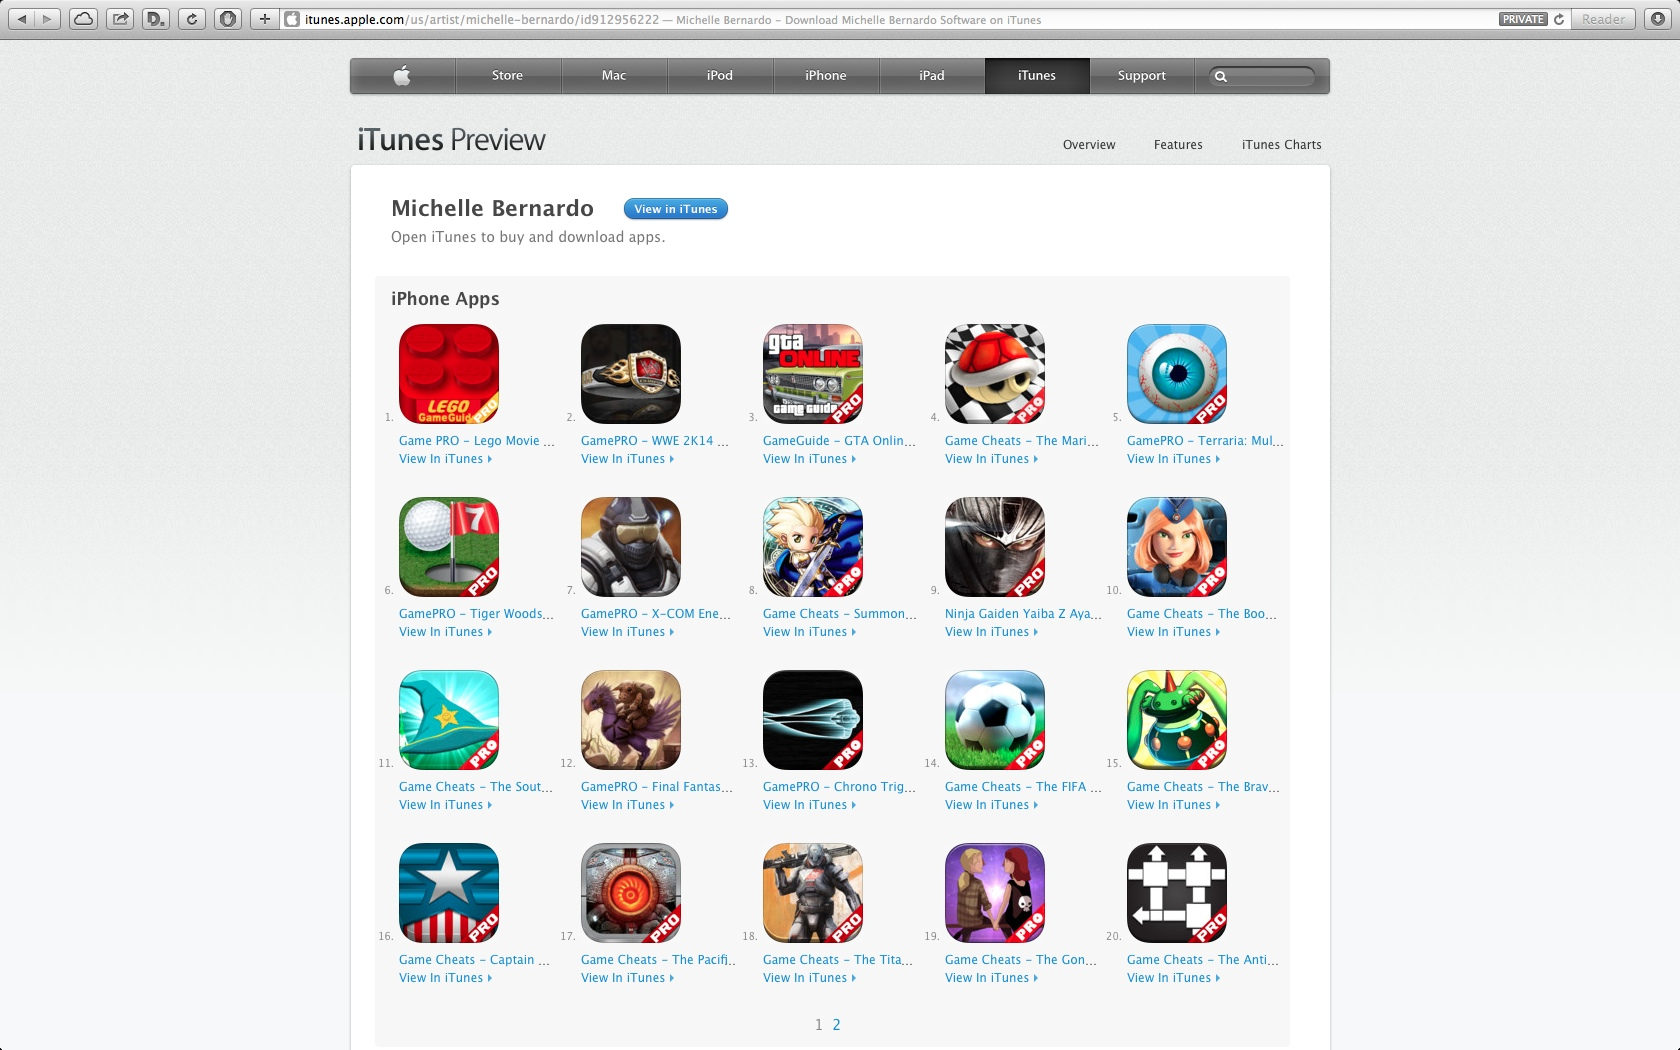 Junk in the App Store Michelle Bernardo